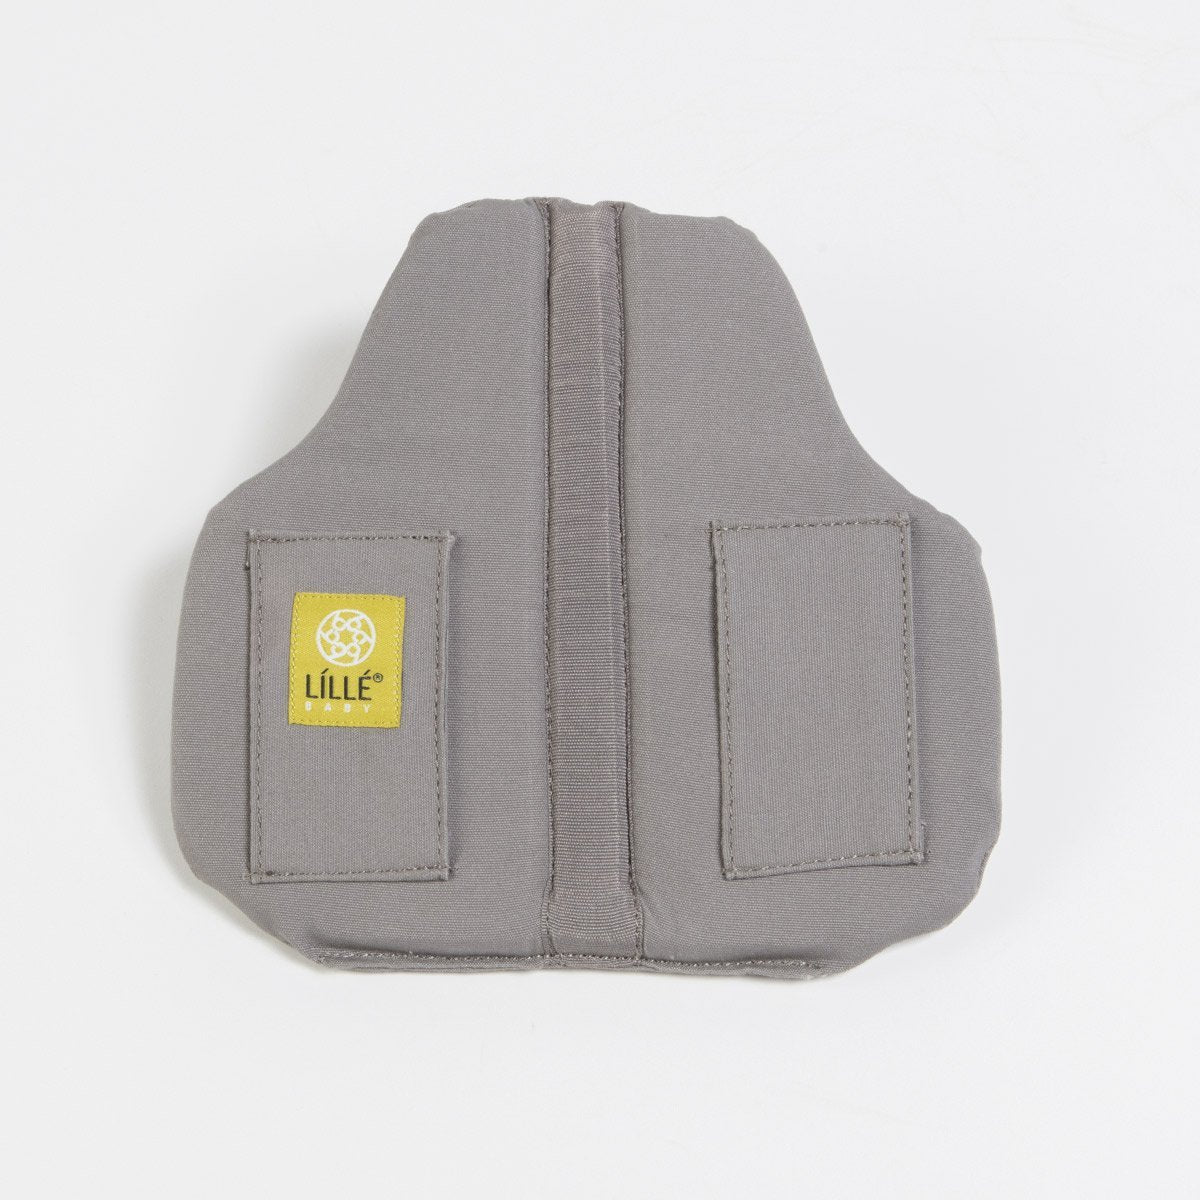 Baby Carrier Accessories For Support And Comfort Lillebaby Series Va 1 A